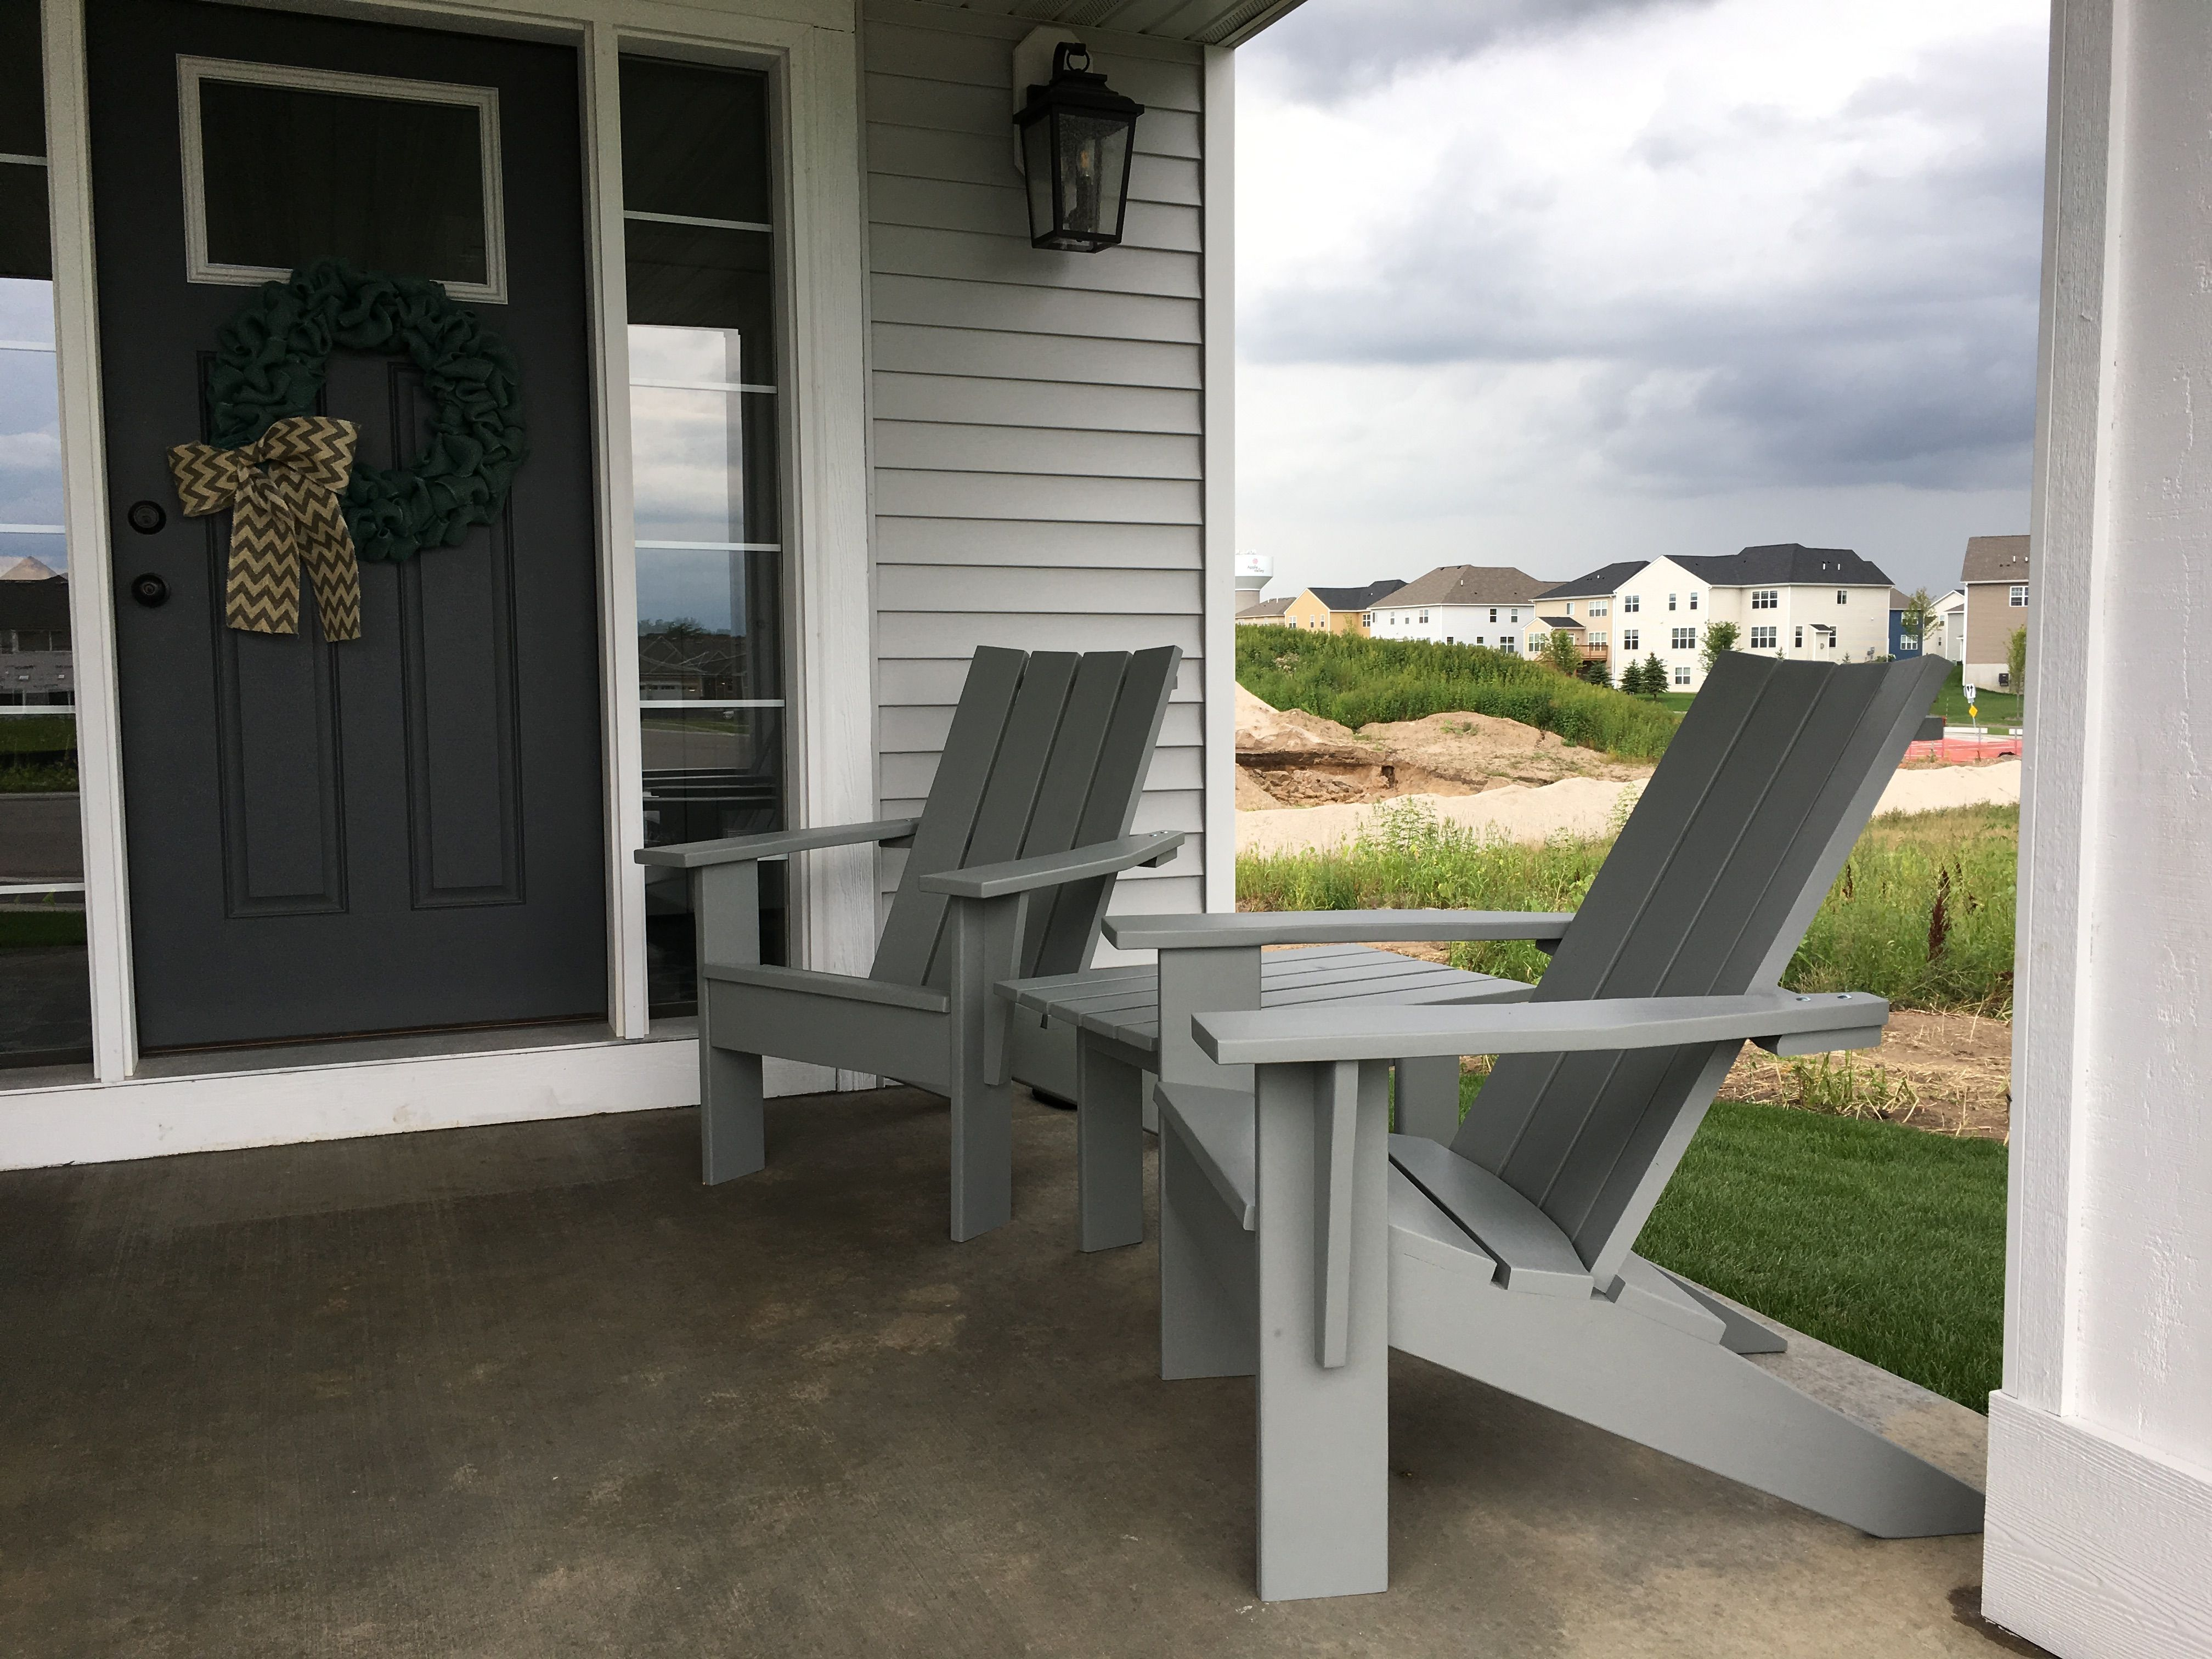 4 Slat Modern Style Adirondack Chairs Stained With Cabot Driftwood